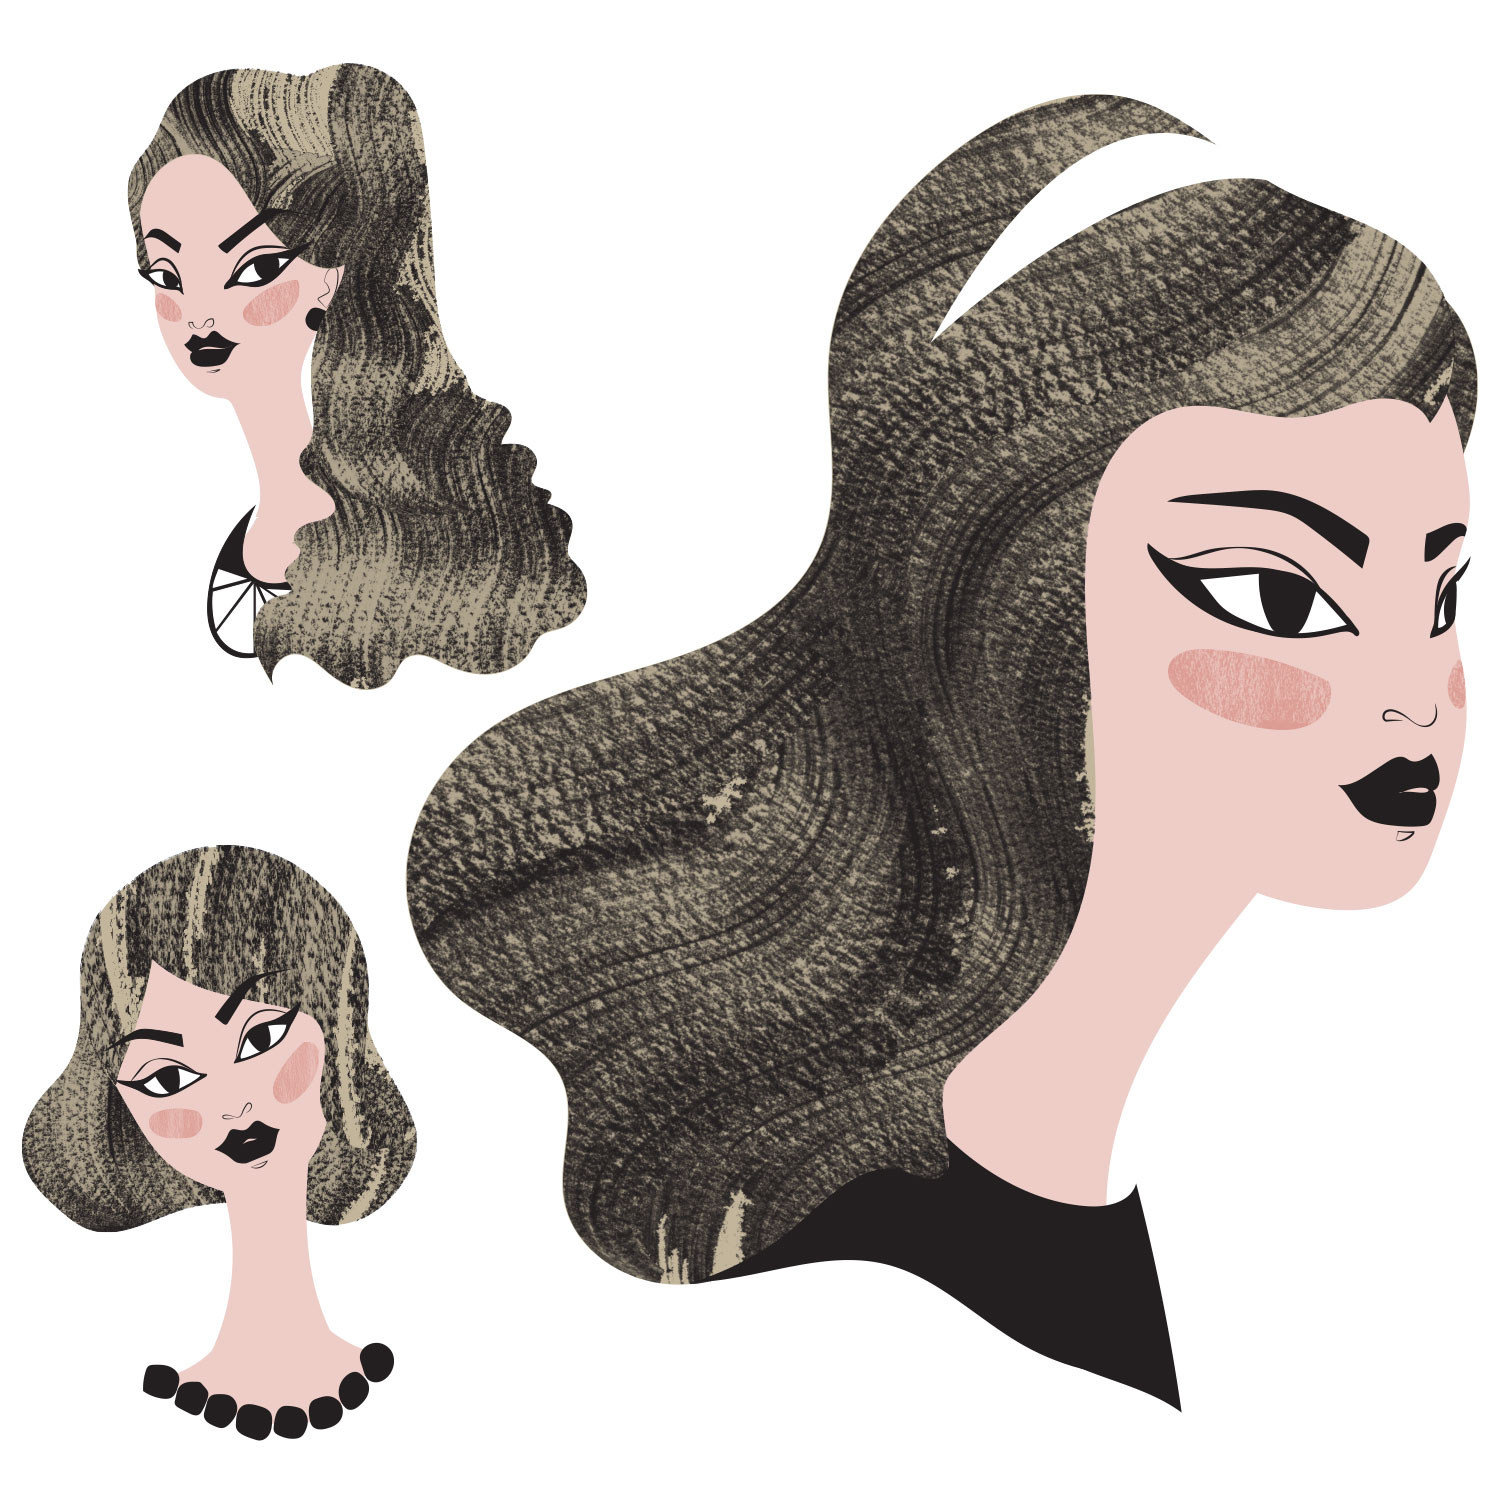 Faces - Fashion & Beauty Illustration